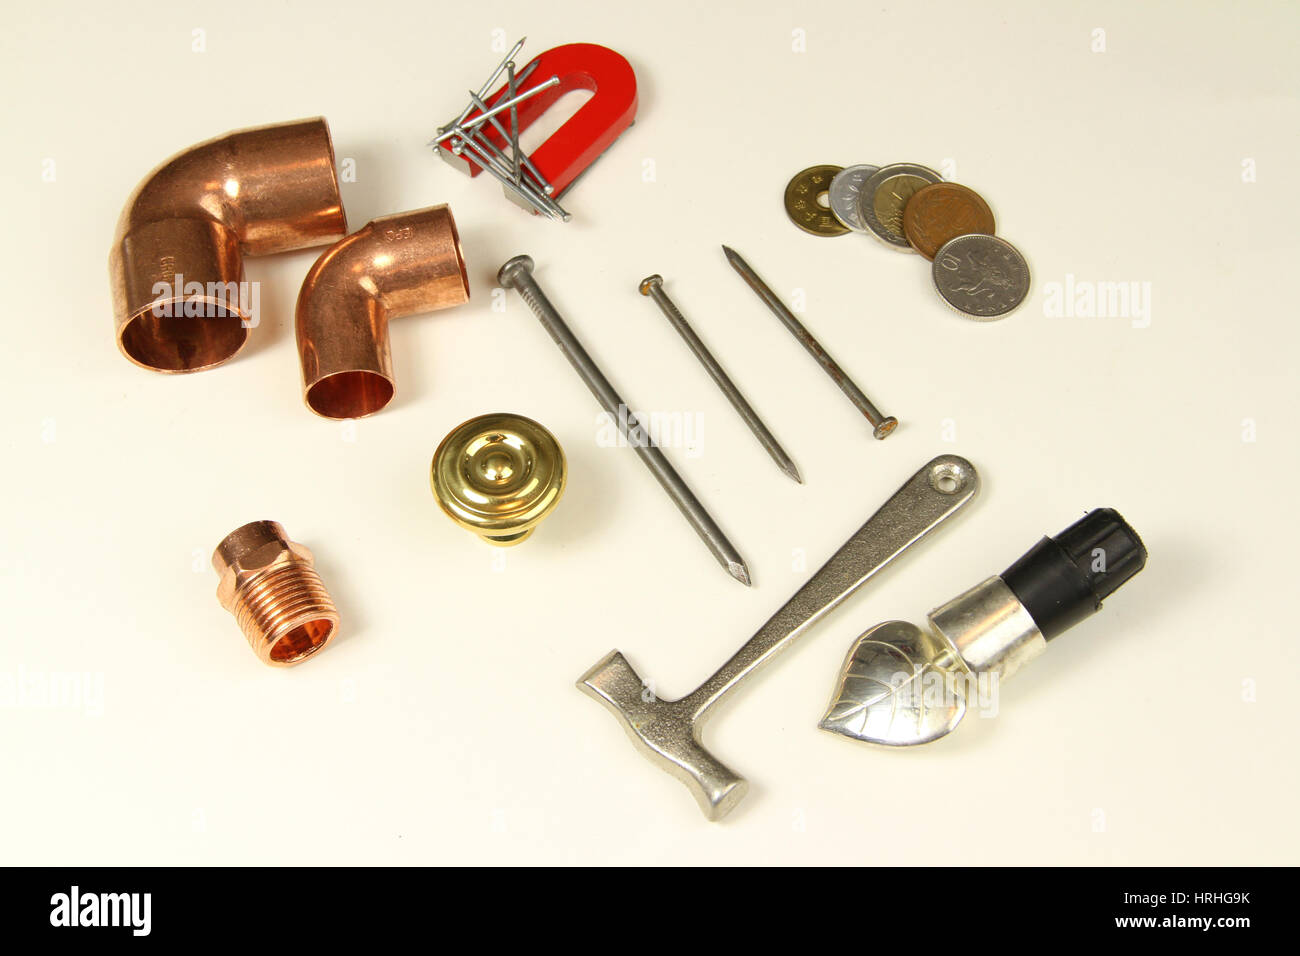 Metal objects - Stock Image